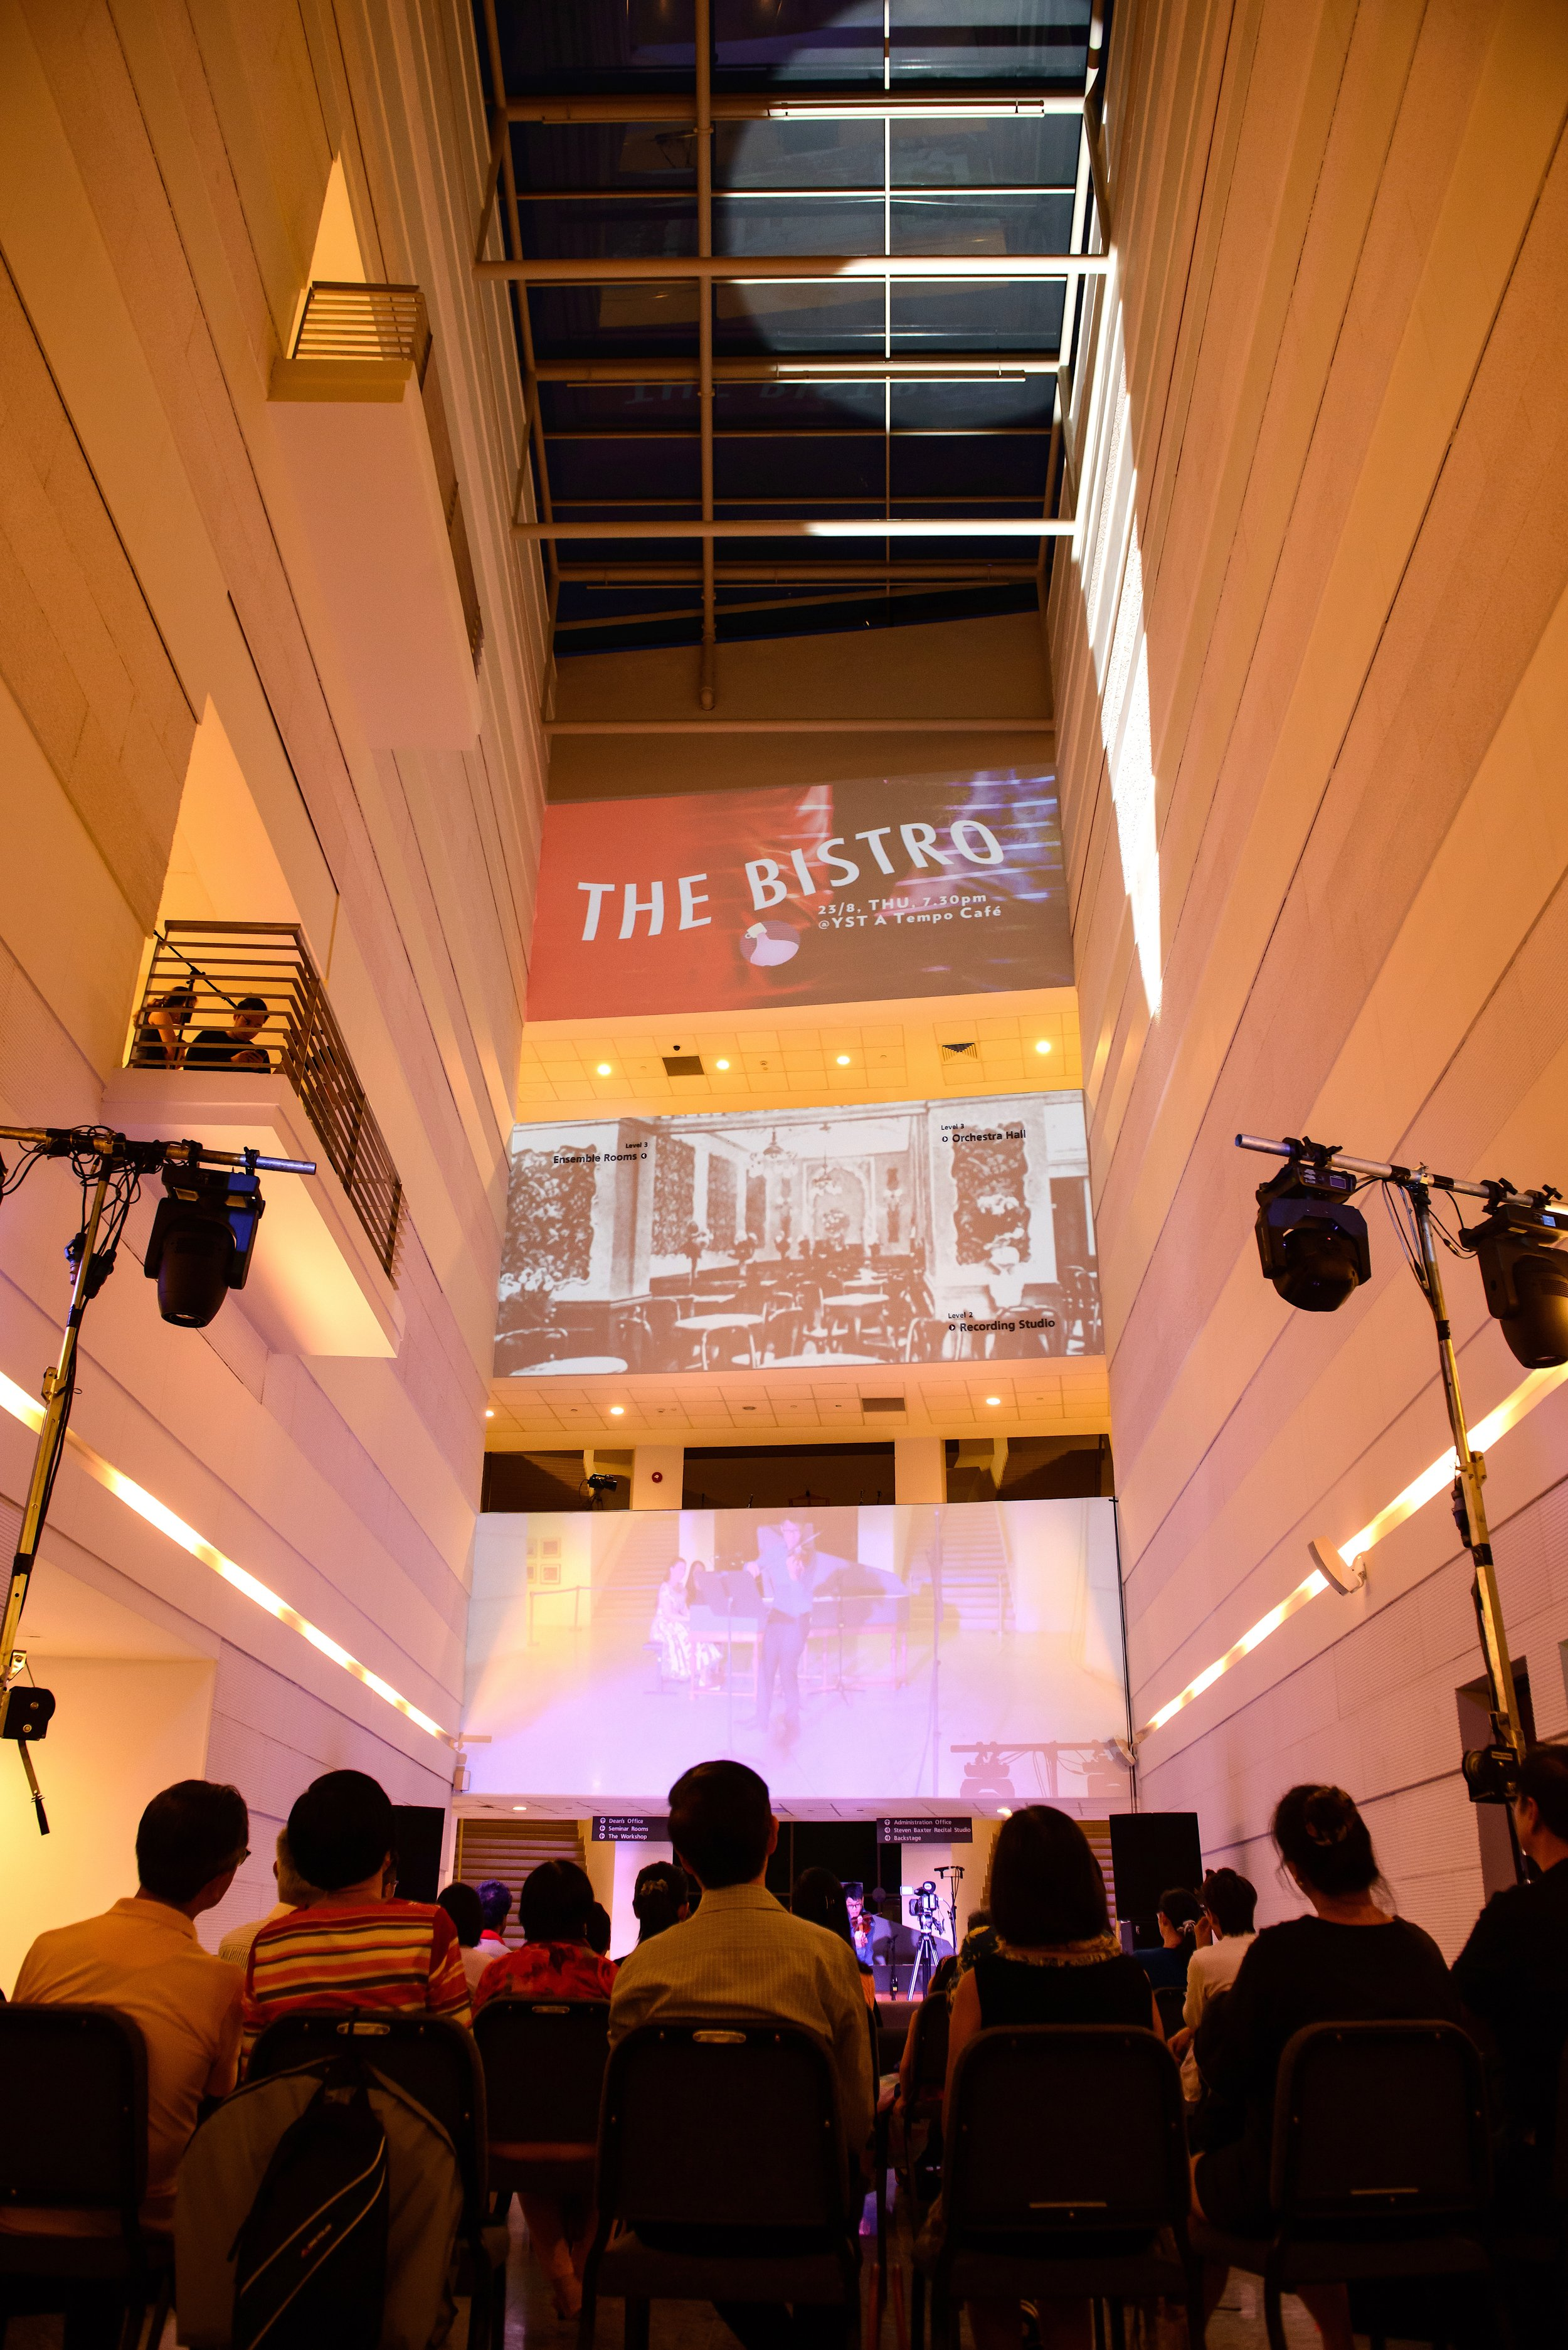 The third concert,  The Bistro , took place in the open space of the YST ground level walkway, with light projections on the central white walls of the YST building.